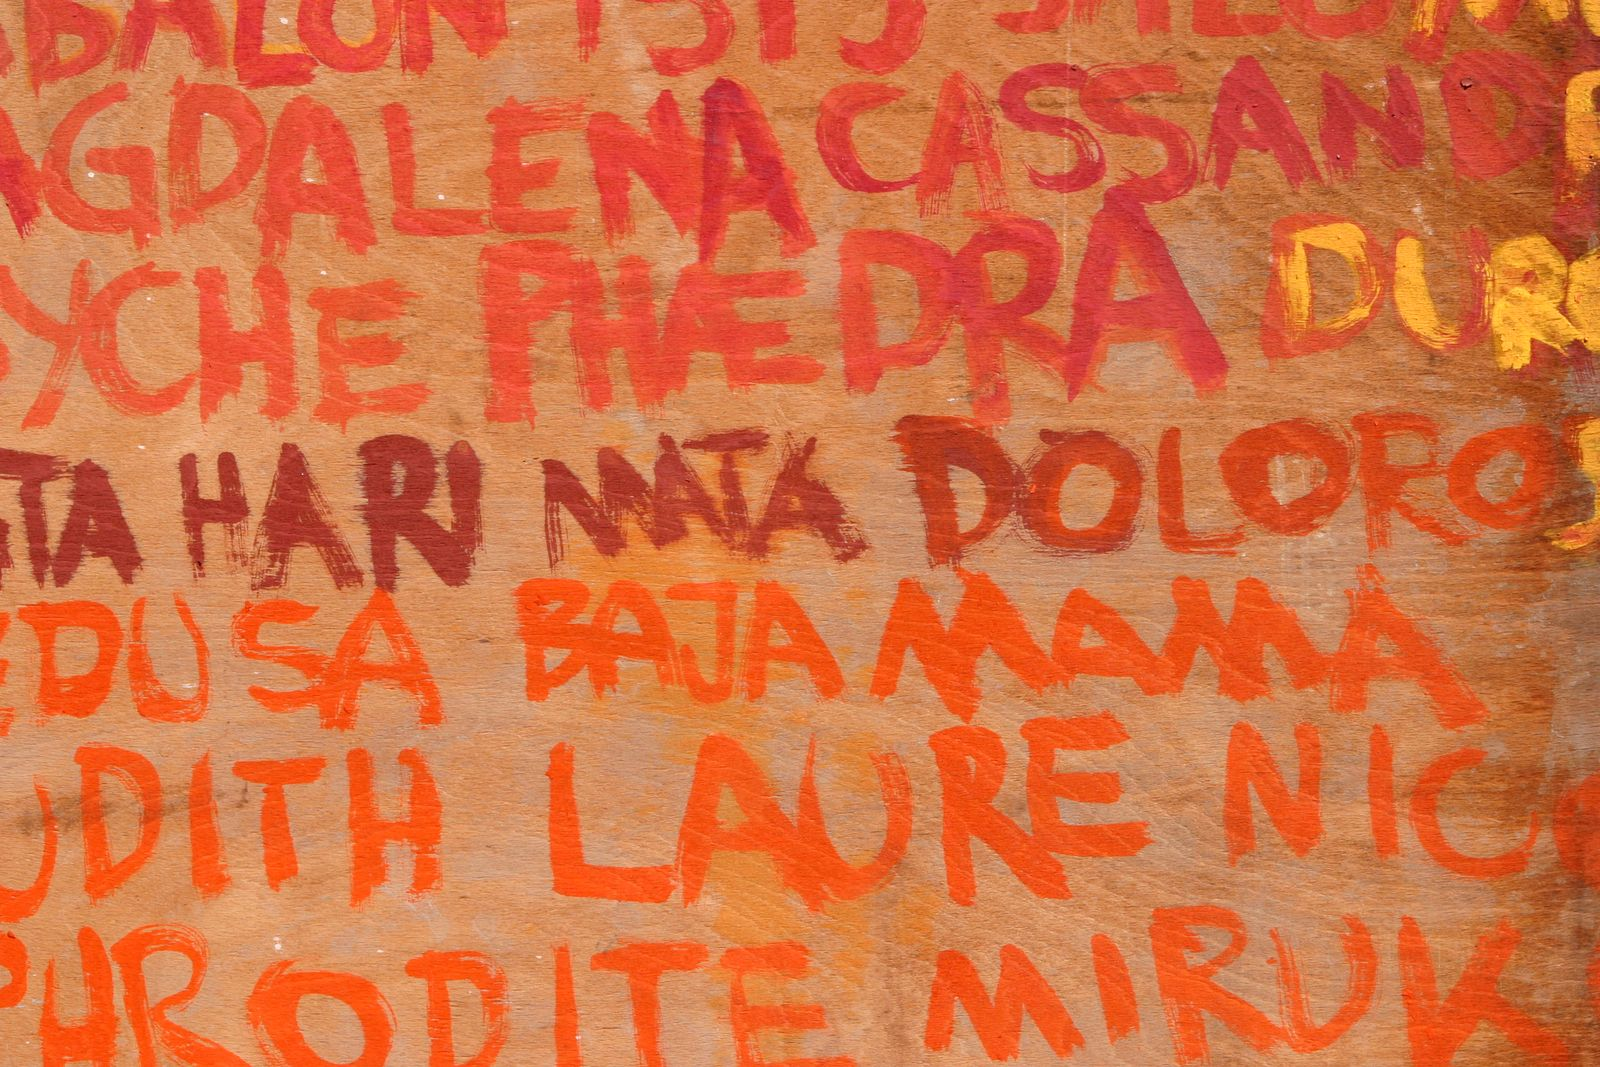 List of names on wall exterior